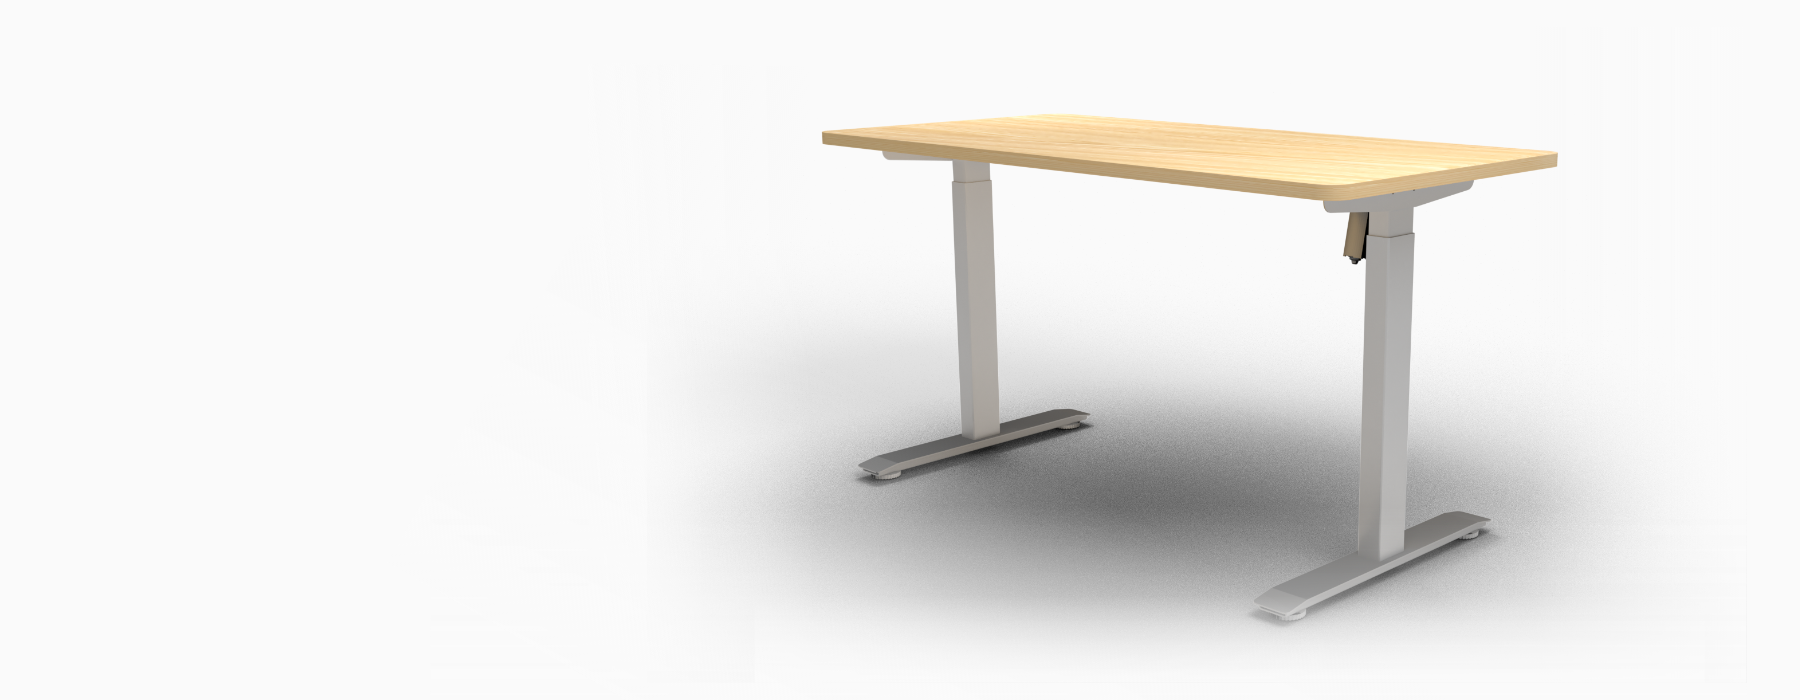 Sit To Stand Desk 1800700 – 2